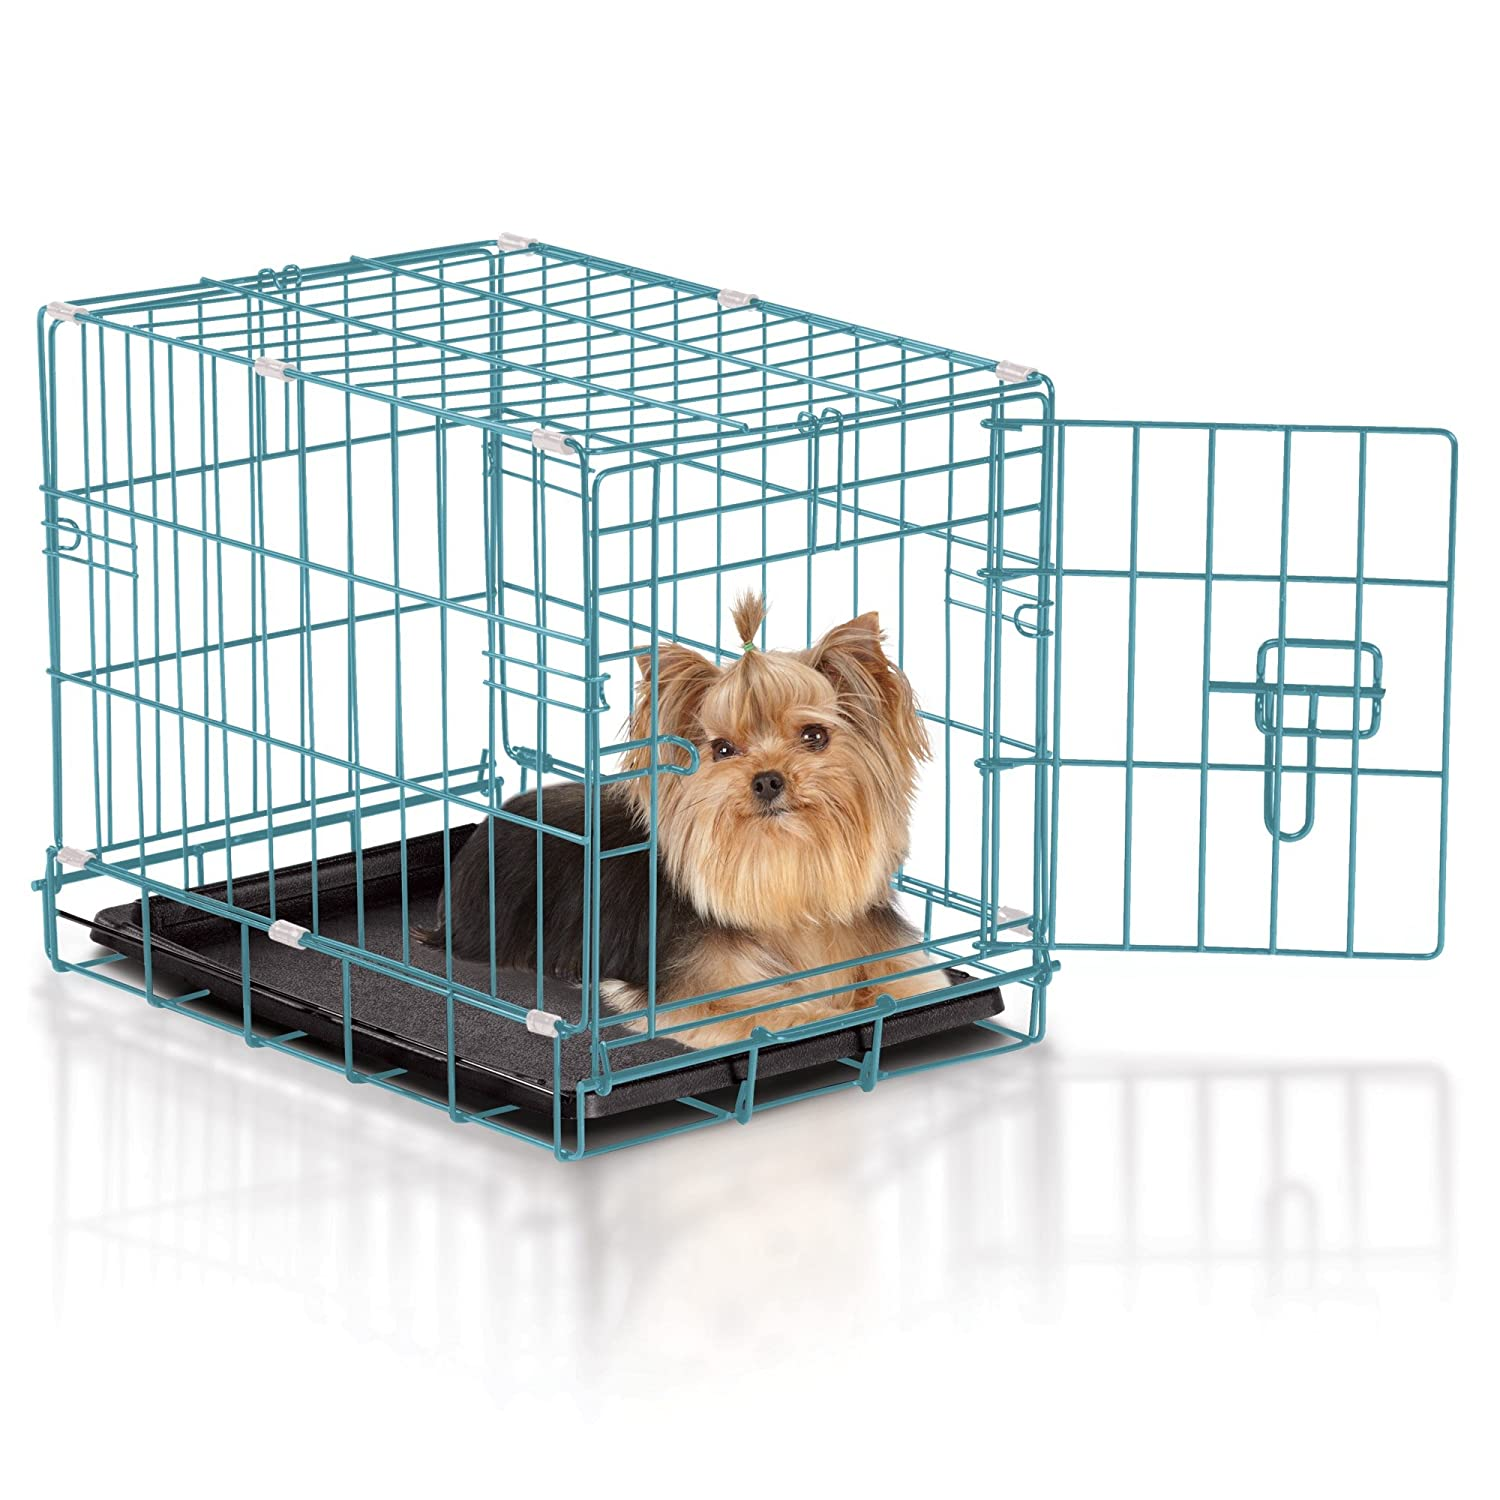 Amazon.com : Easy Dog Crate, X-Small, Teal : Pet Supplies